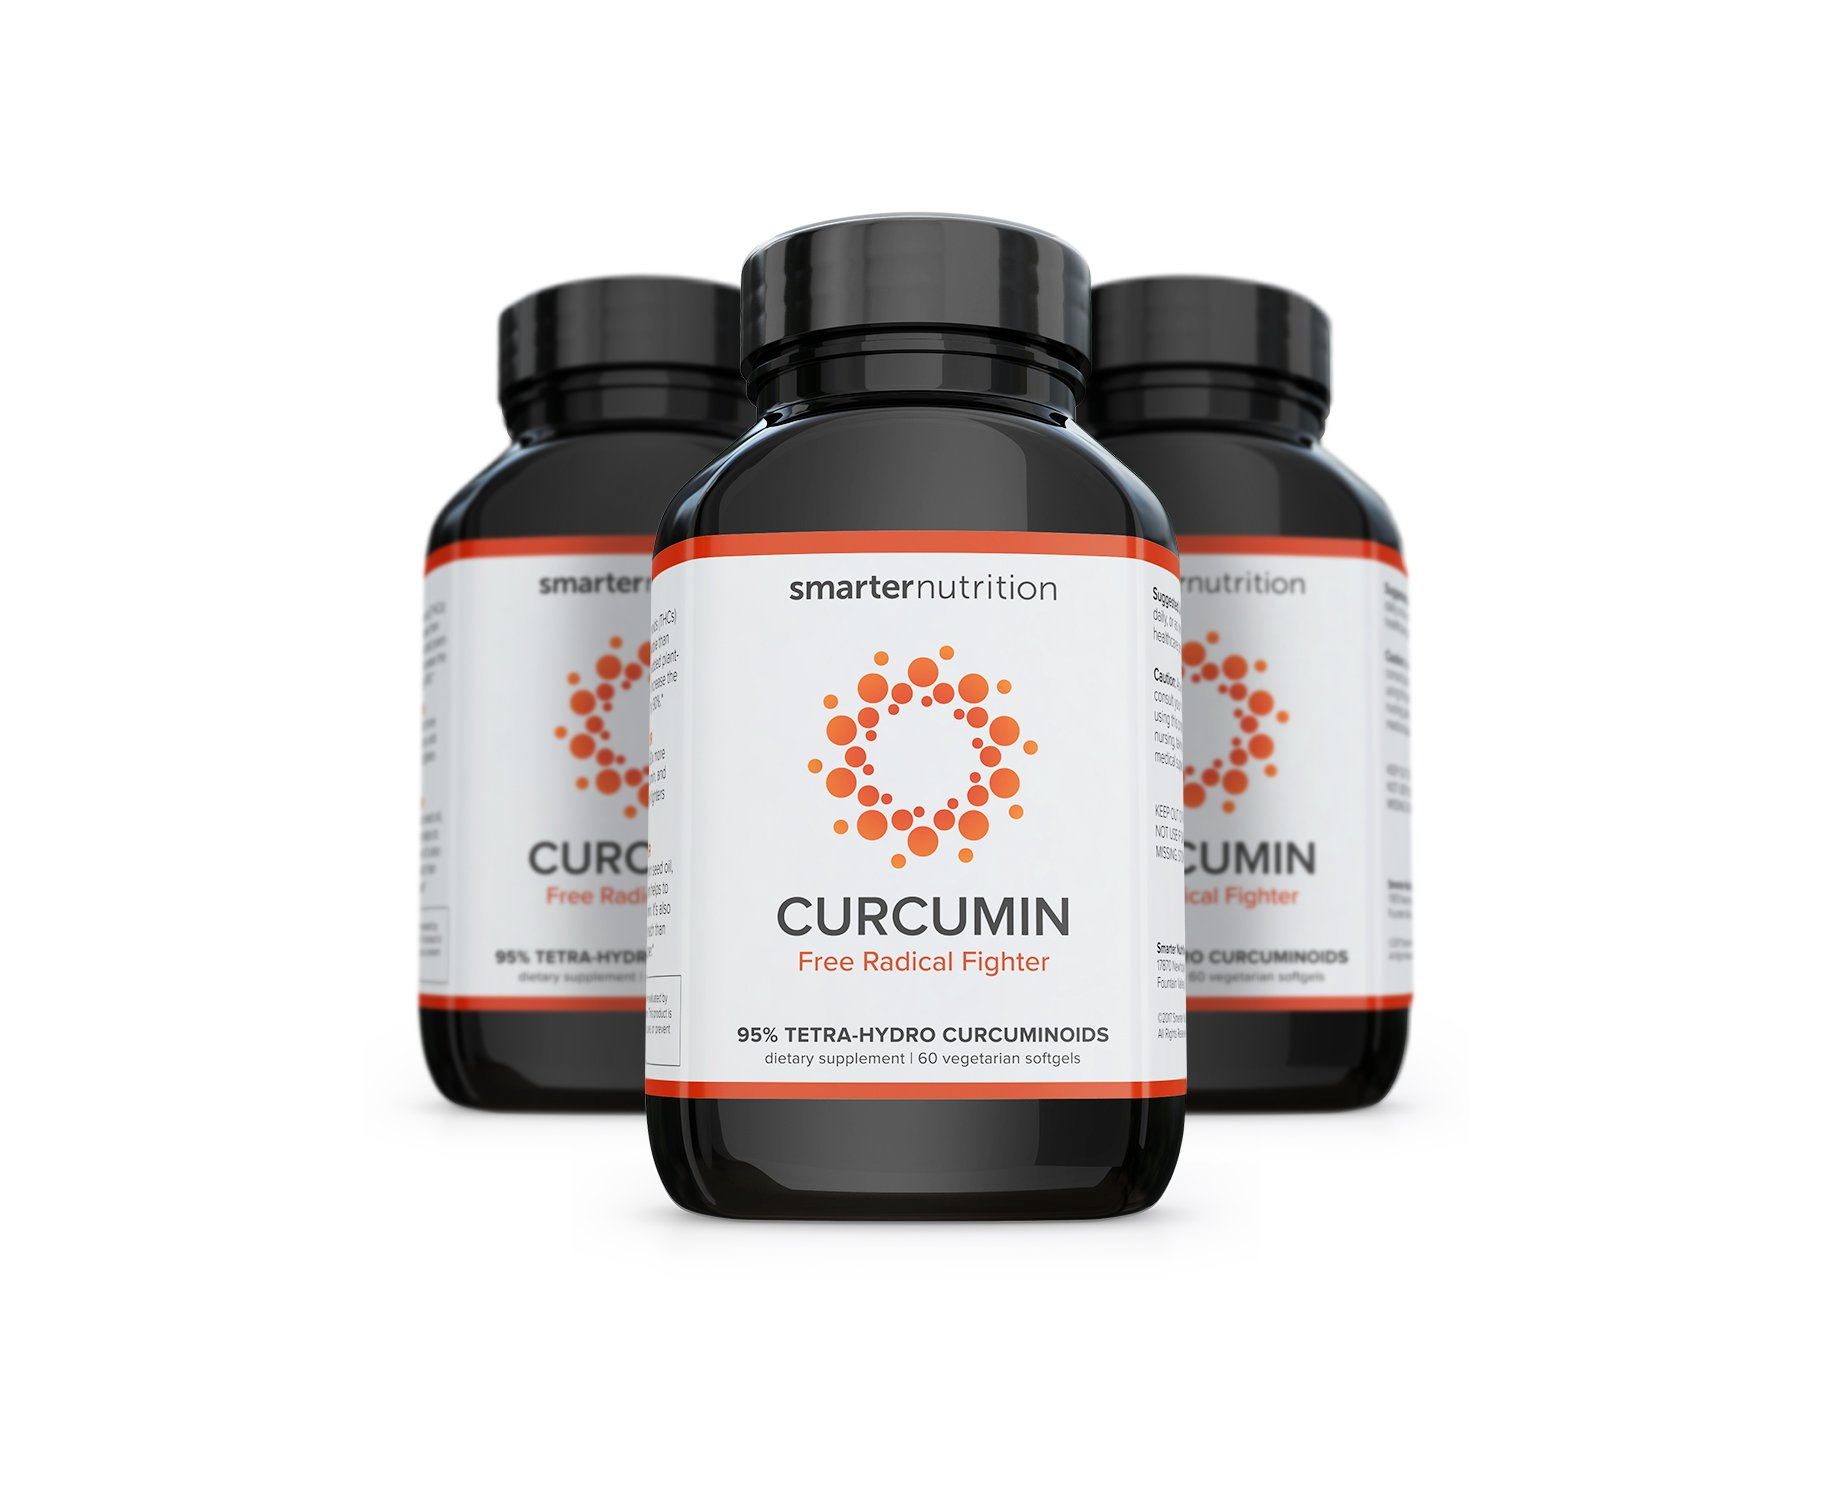 Smarter Turmeric Curcumin - Potency and Absorption in a SoftGel. The Most Active Form of Curcuminoid Found in The Turmeric Root (3 Month Supply)